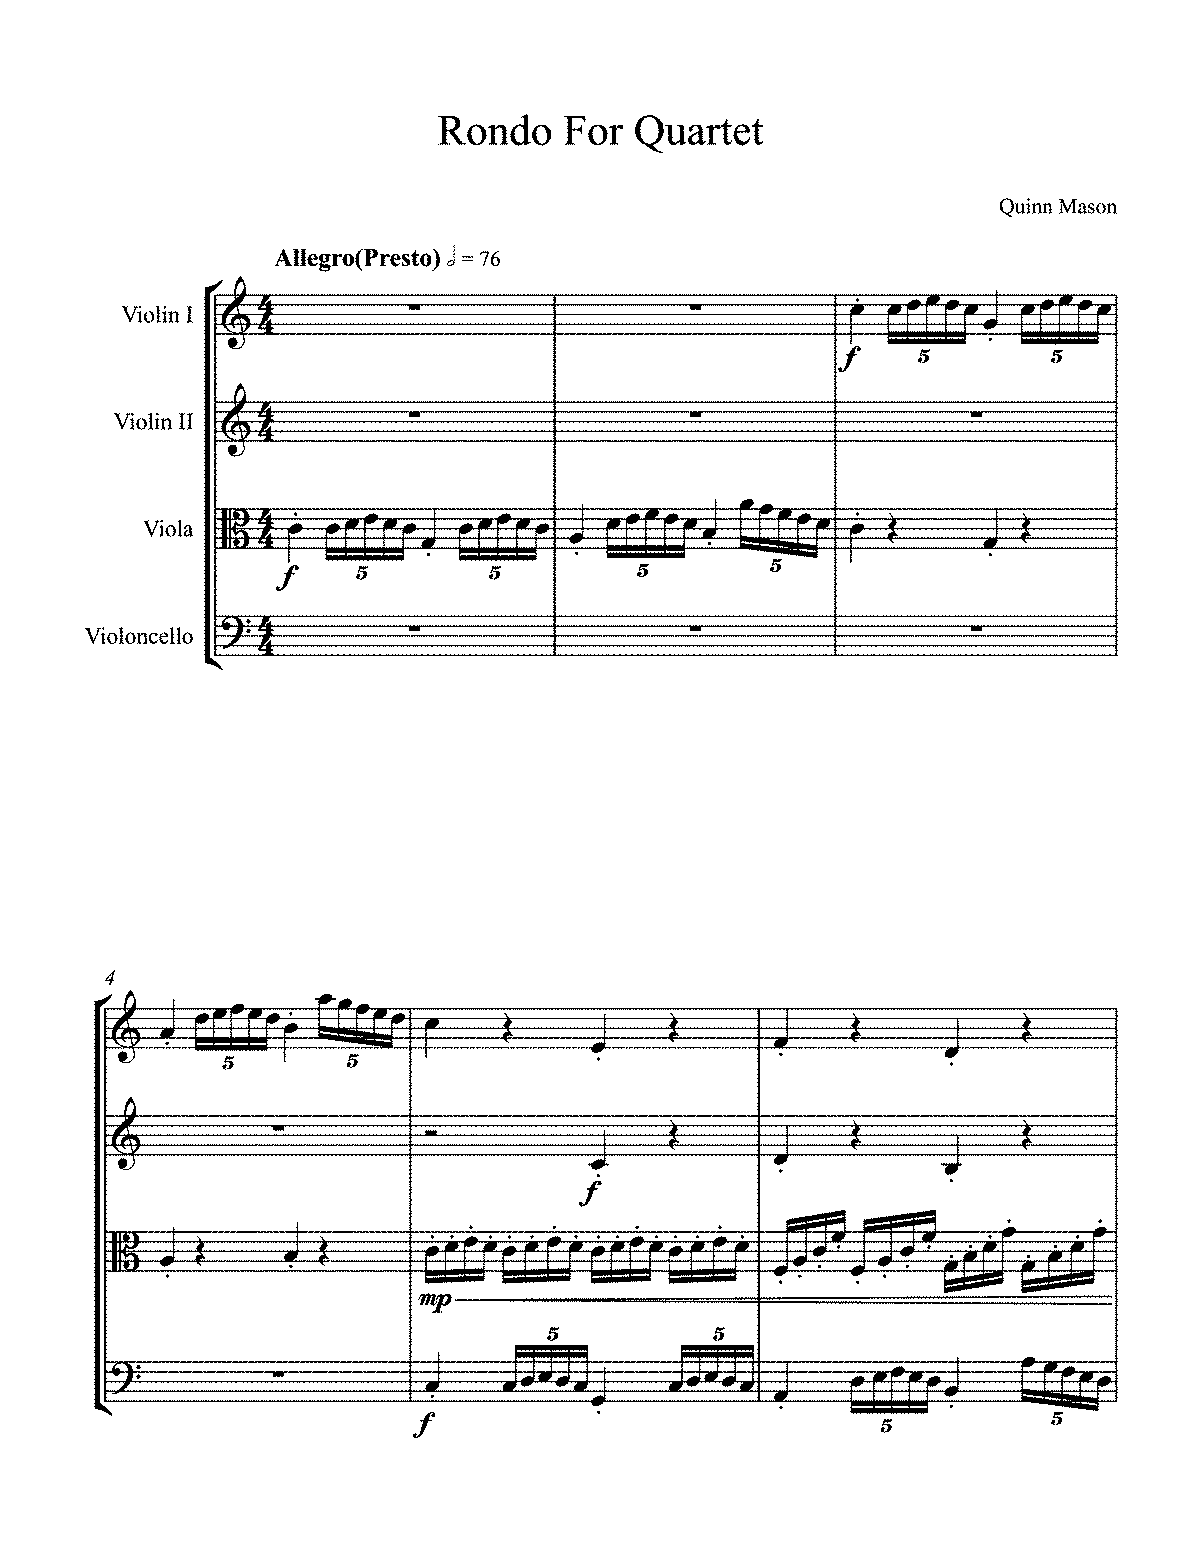 PMLP297635-Rondo For Quartet.pdf